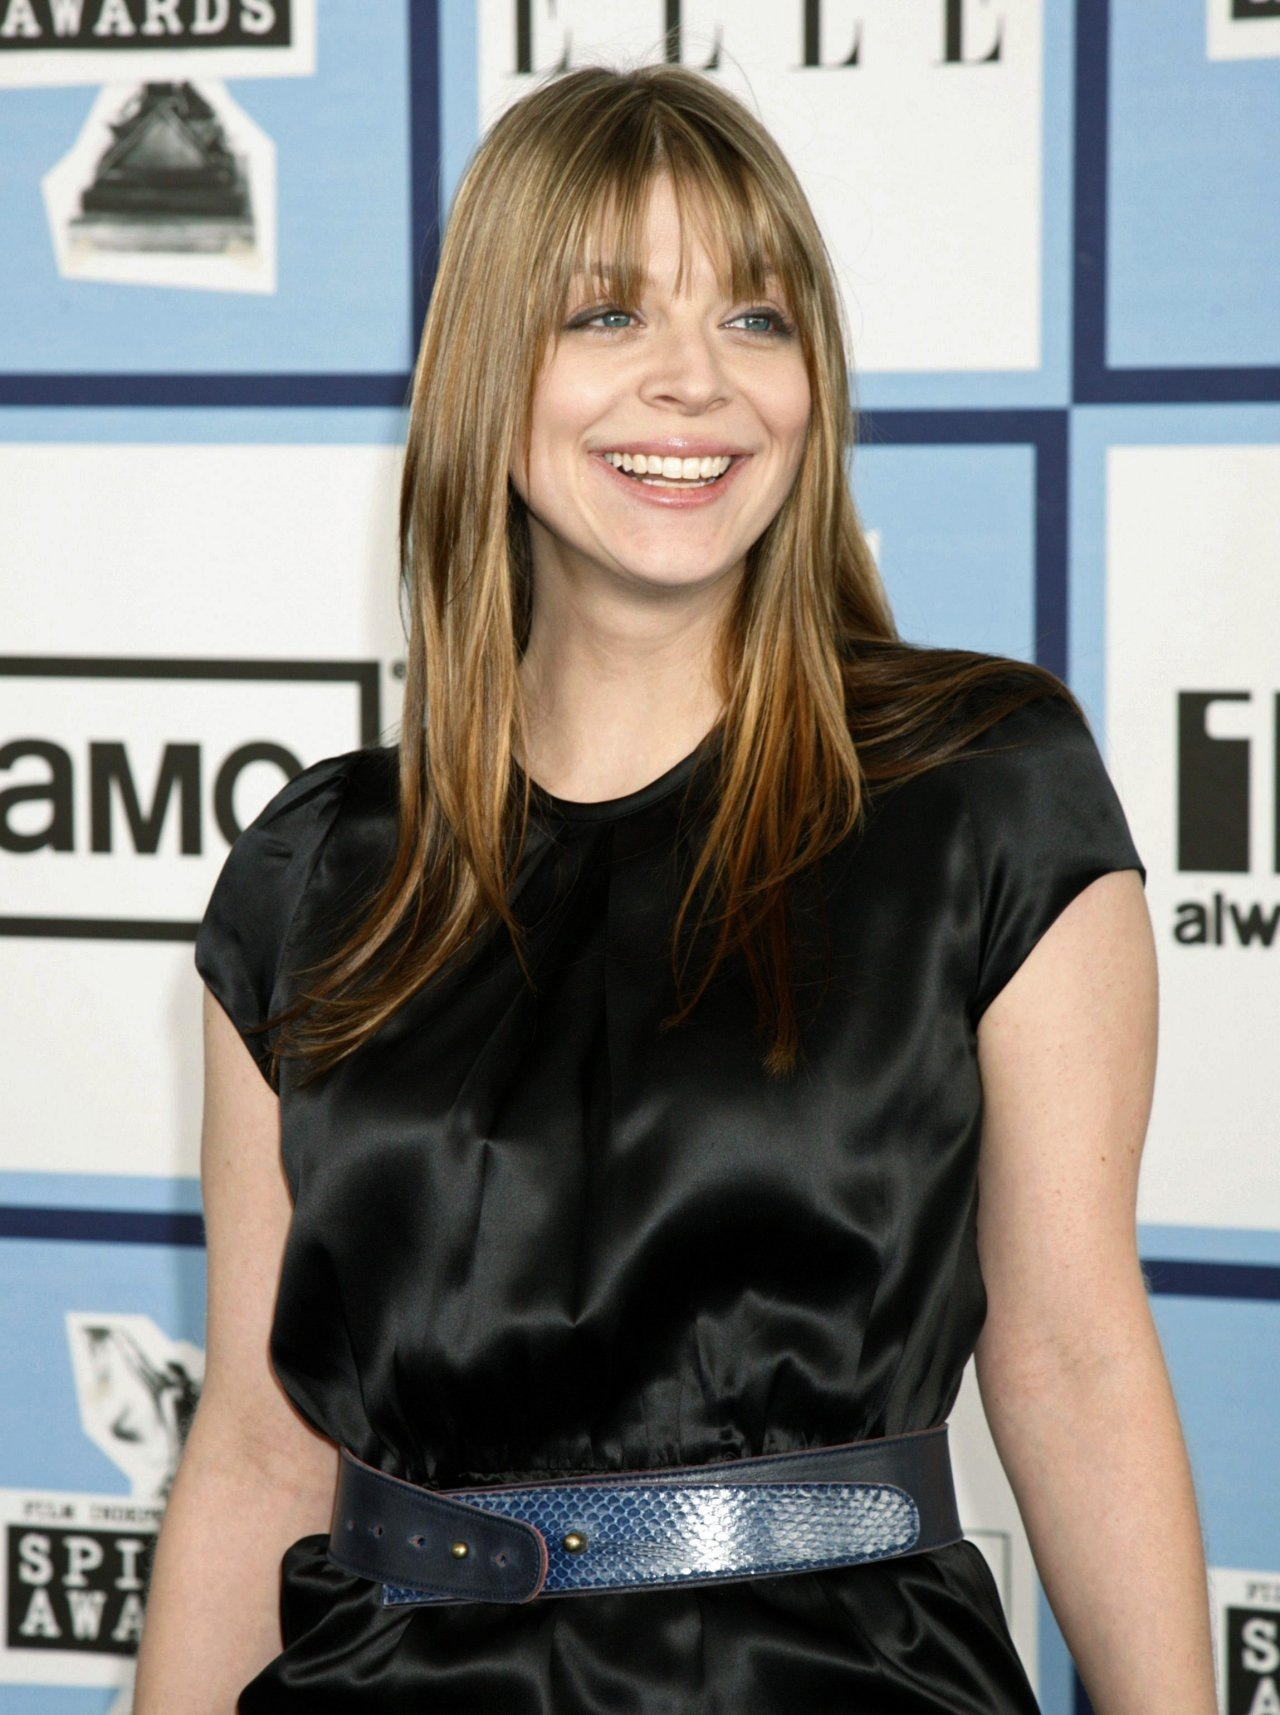 Amber Benson wallpapers (30841). Best Amber Benson pictures